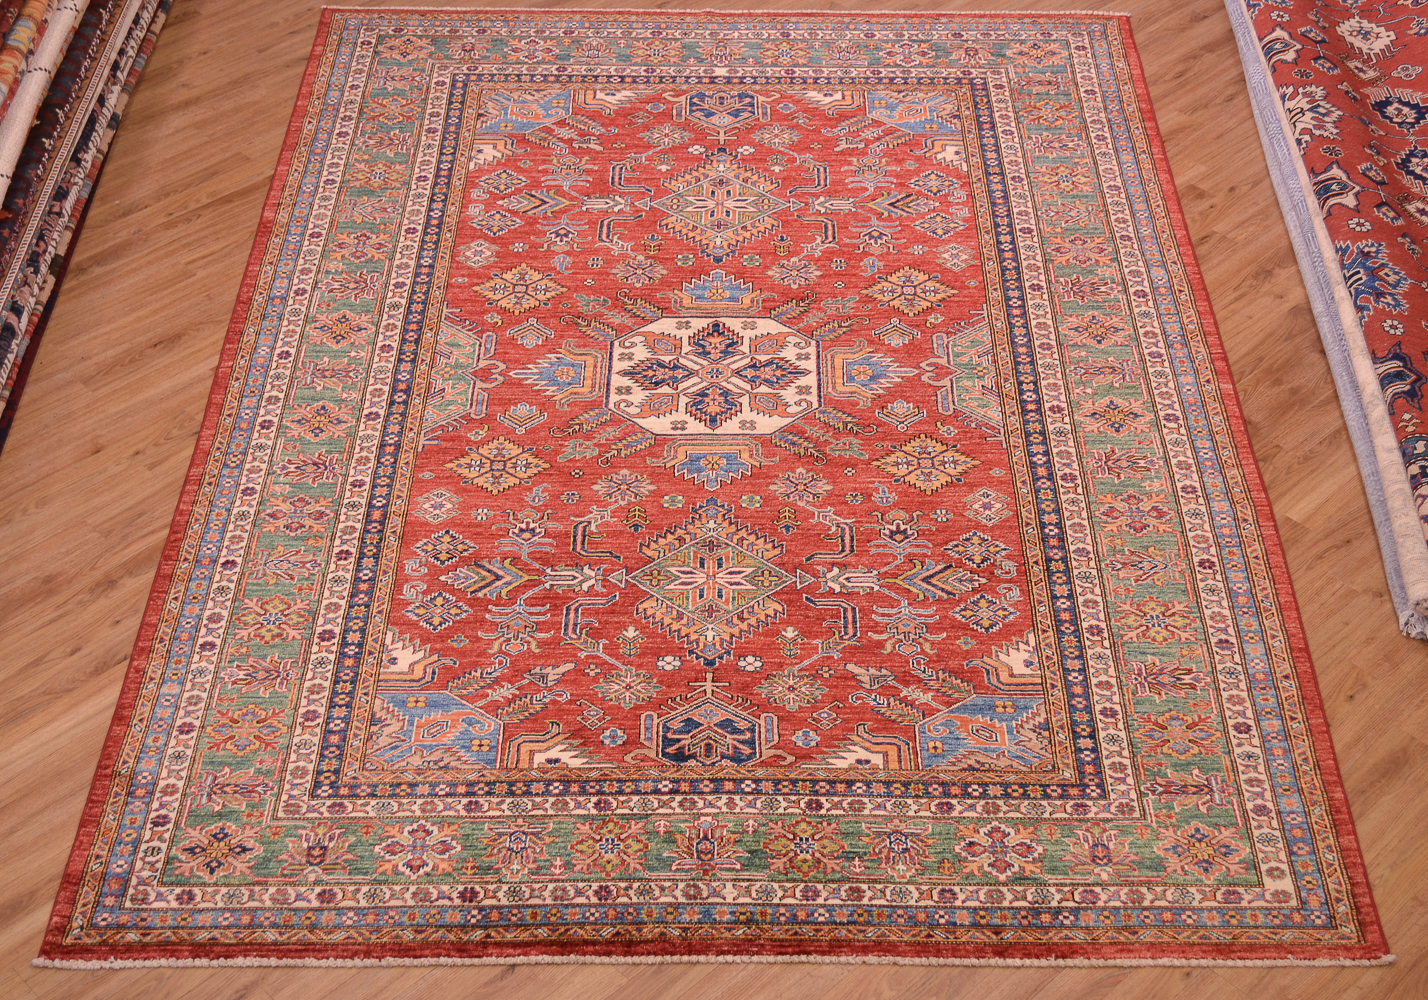 Fine Afghan Kazak Carpet 3 04x2 11m The Oriental Rug